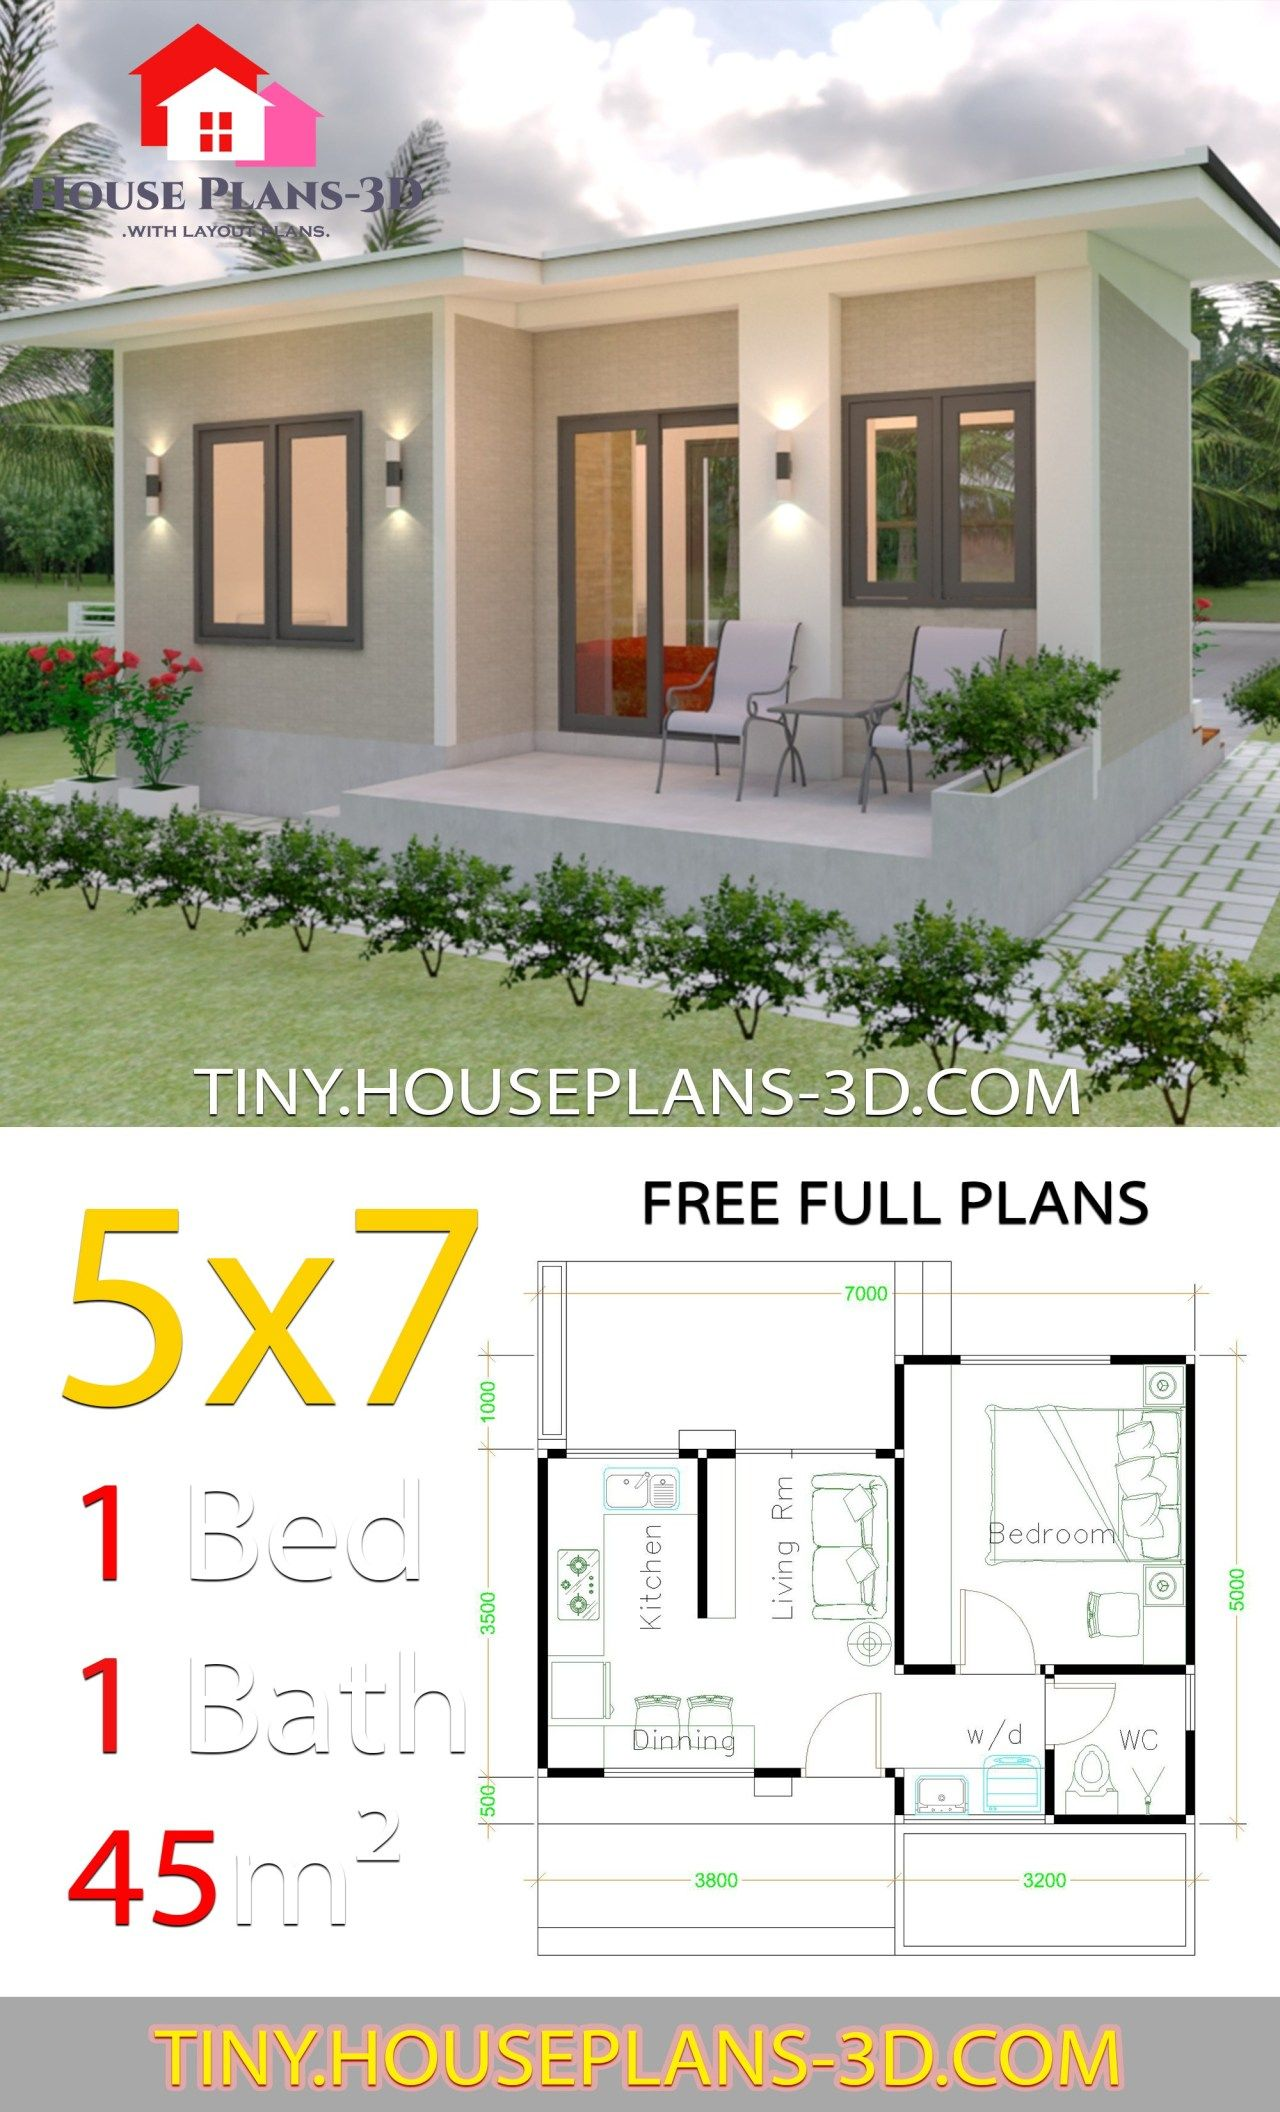 Small House Design Plans 5x7 With One Bedroom Shed Roof Tiny House Plans Small House Design Plans Simple House Plans One Bedroom House